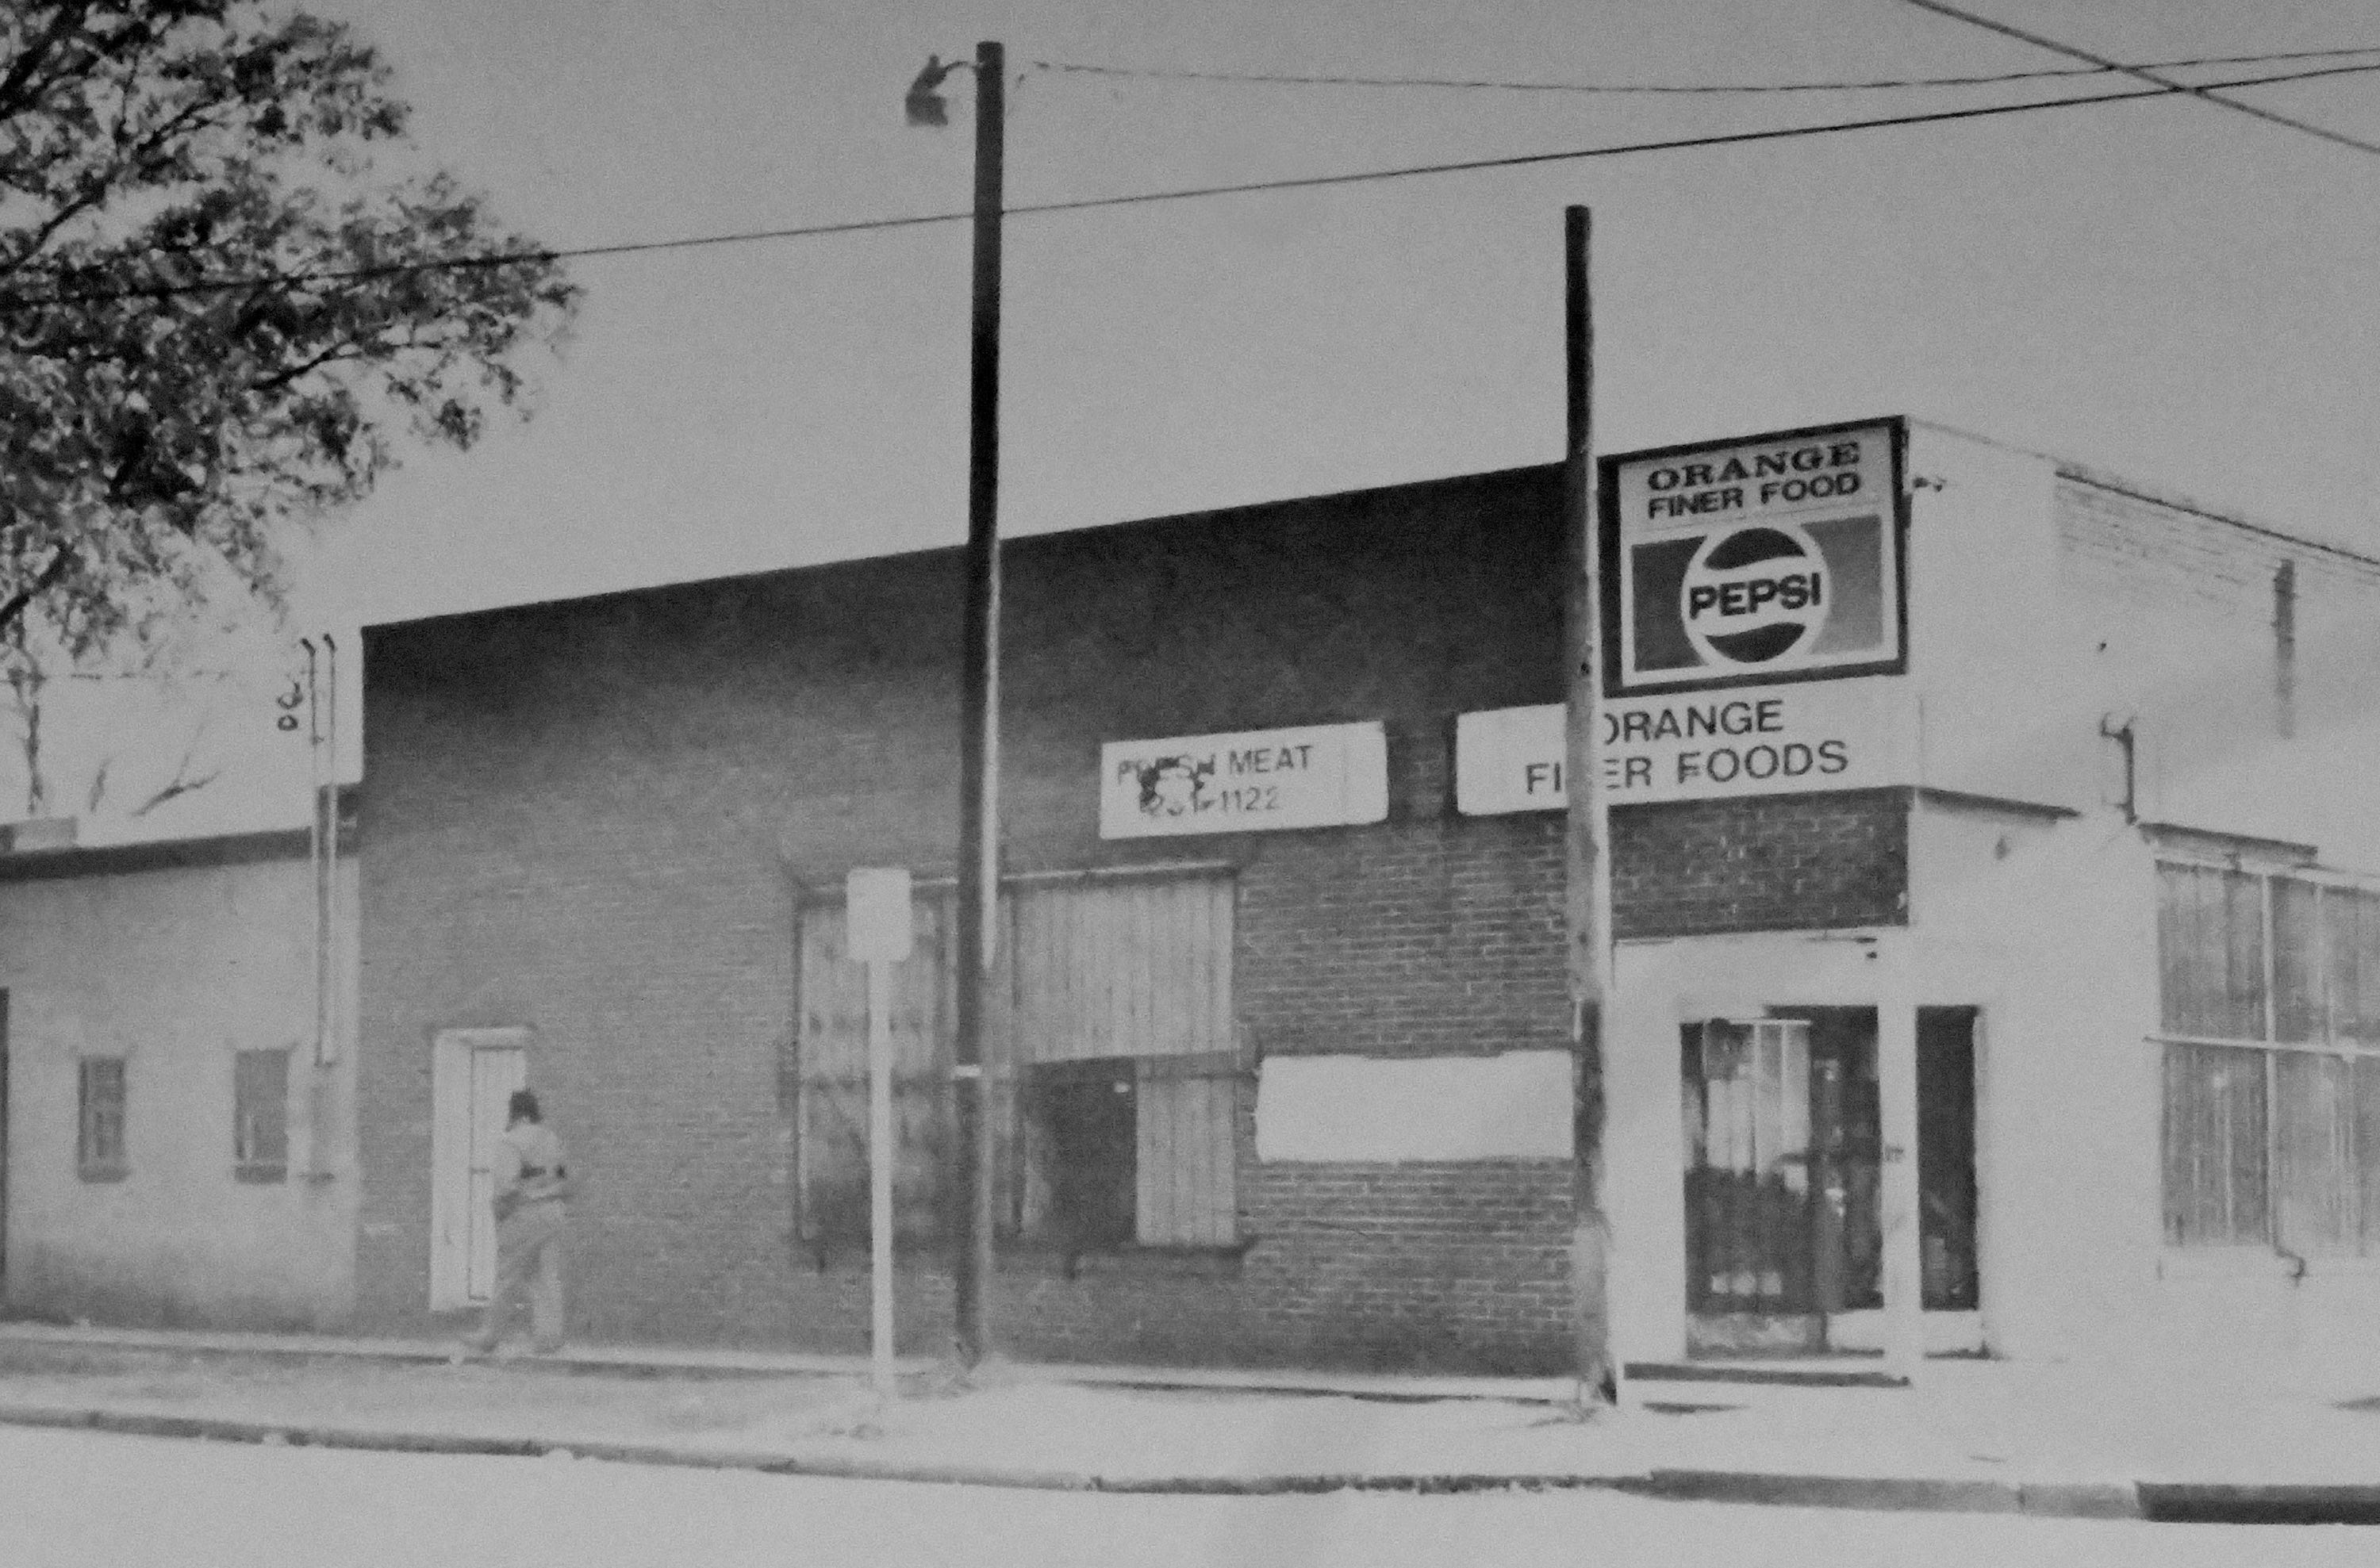 Orange Finer Foods on Orange Street in Wilmington, N.C., is shown on Jan. 21, 1992. Many small grocery stores like this one have closed over the years, leaving many residents without easy access to fresh food.